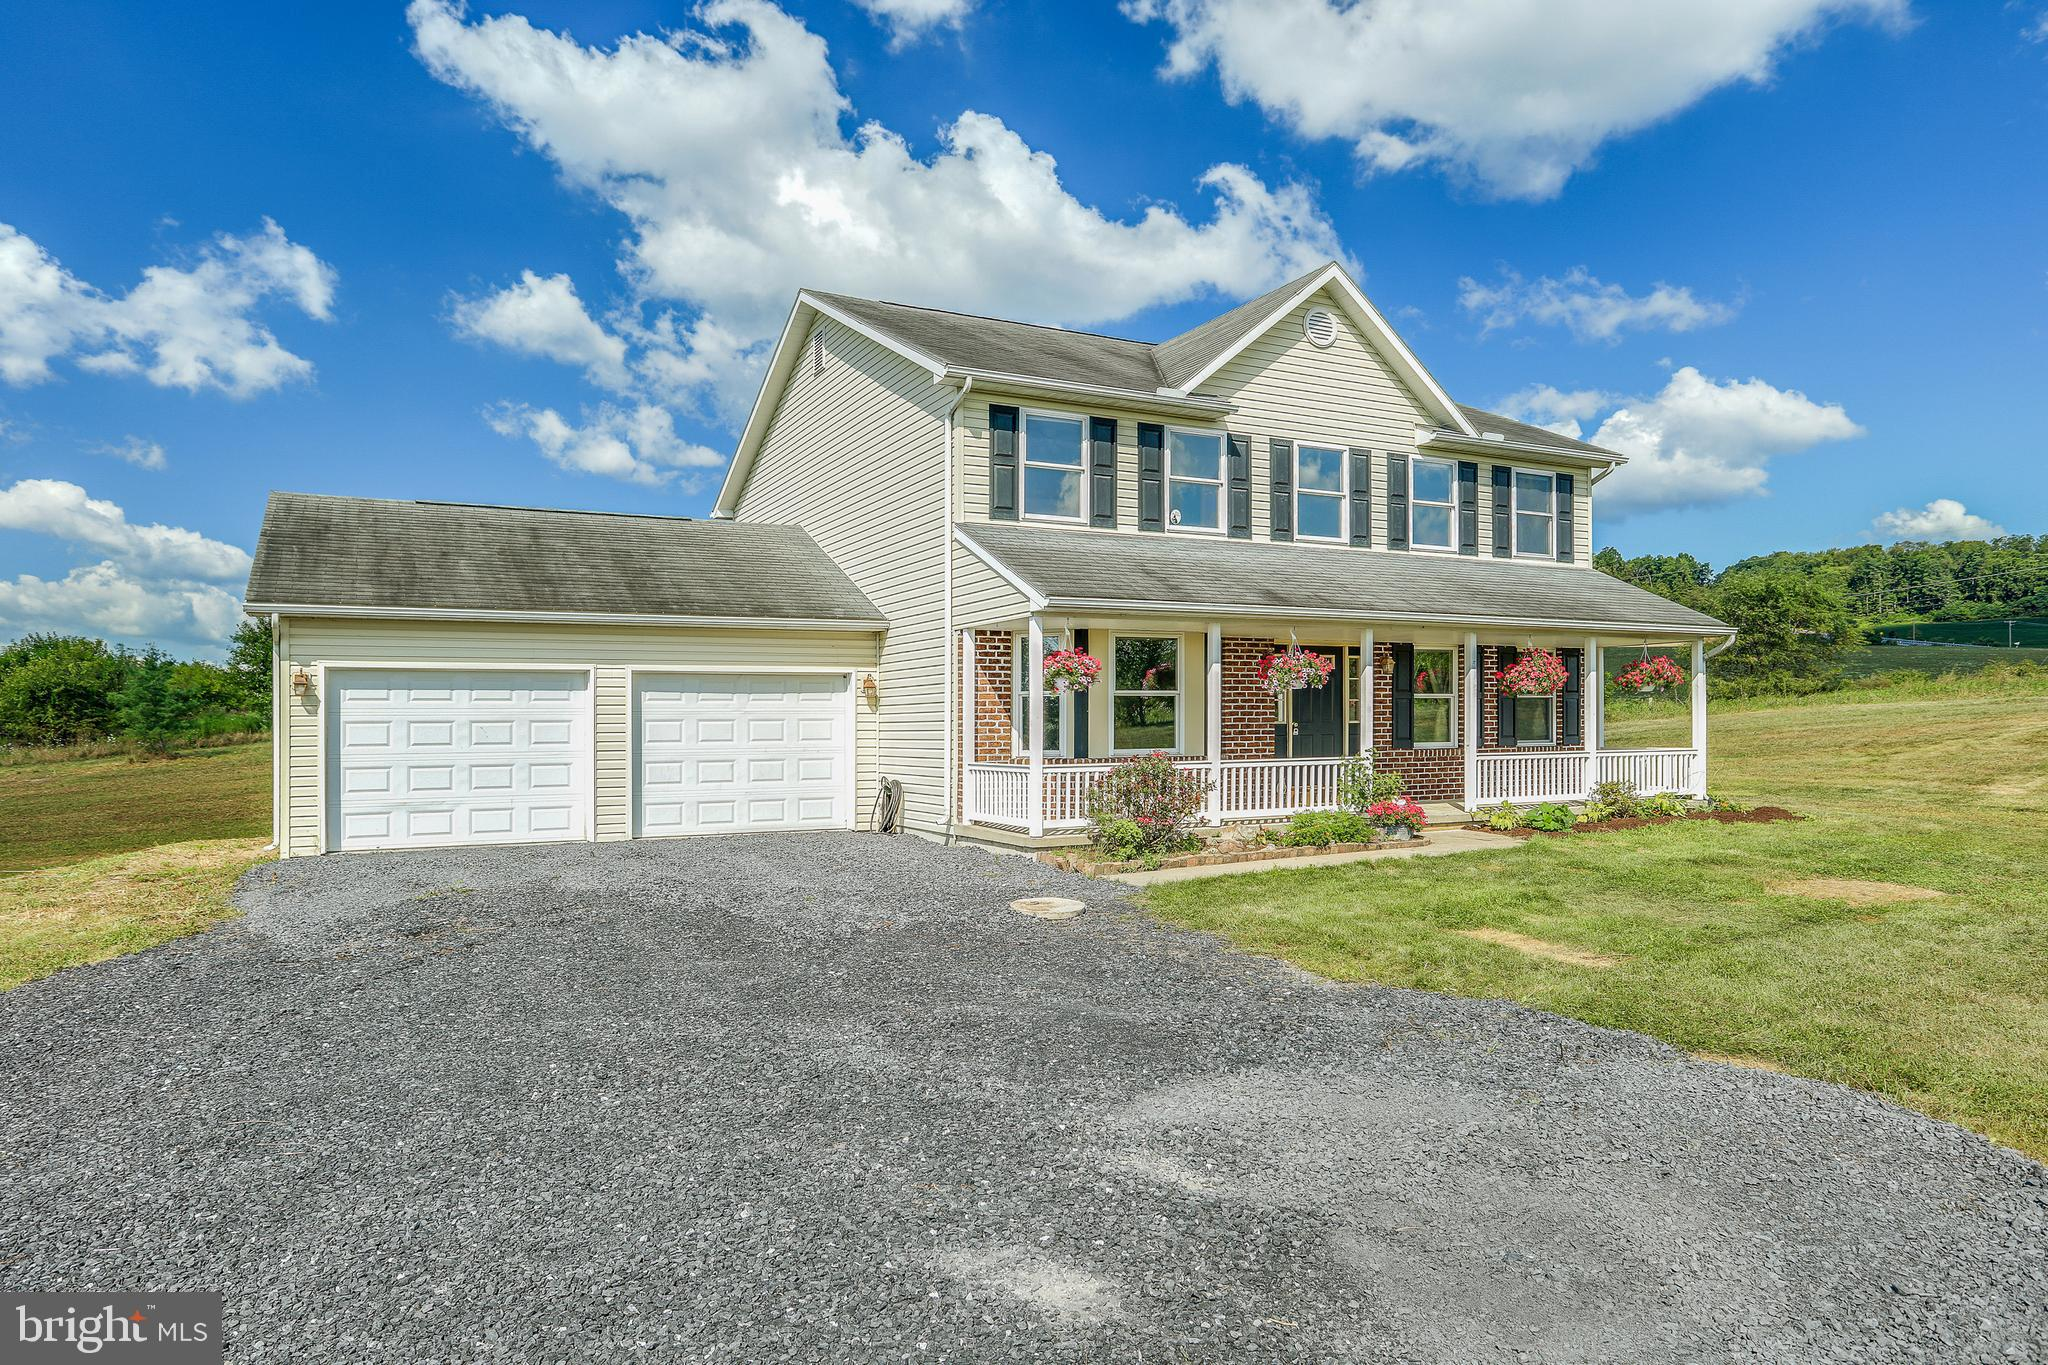 660 VETERANS WAY, ELLIOTTSBURG, PA 17024